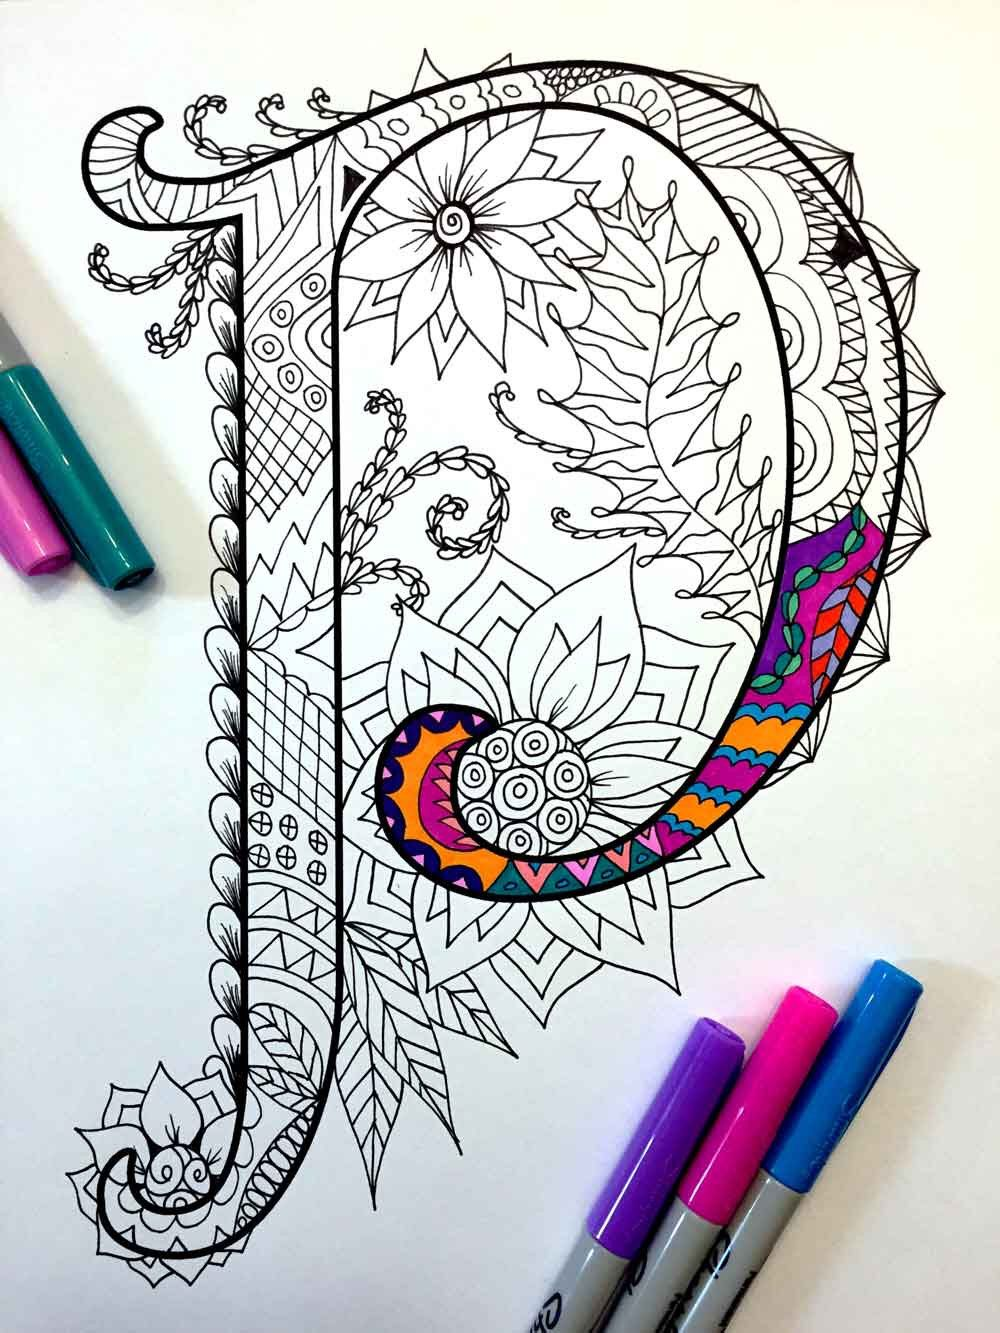 Pin de sutton abc en Doodles, Zentangles, Zendoodles, Journaling ...